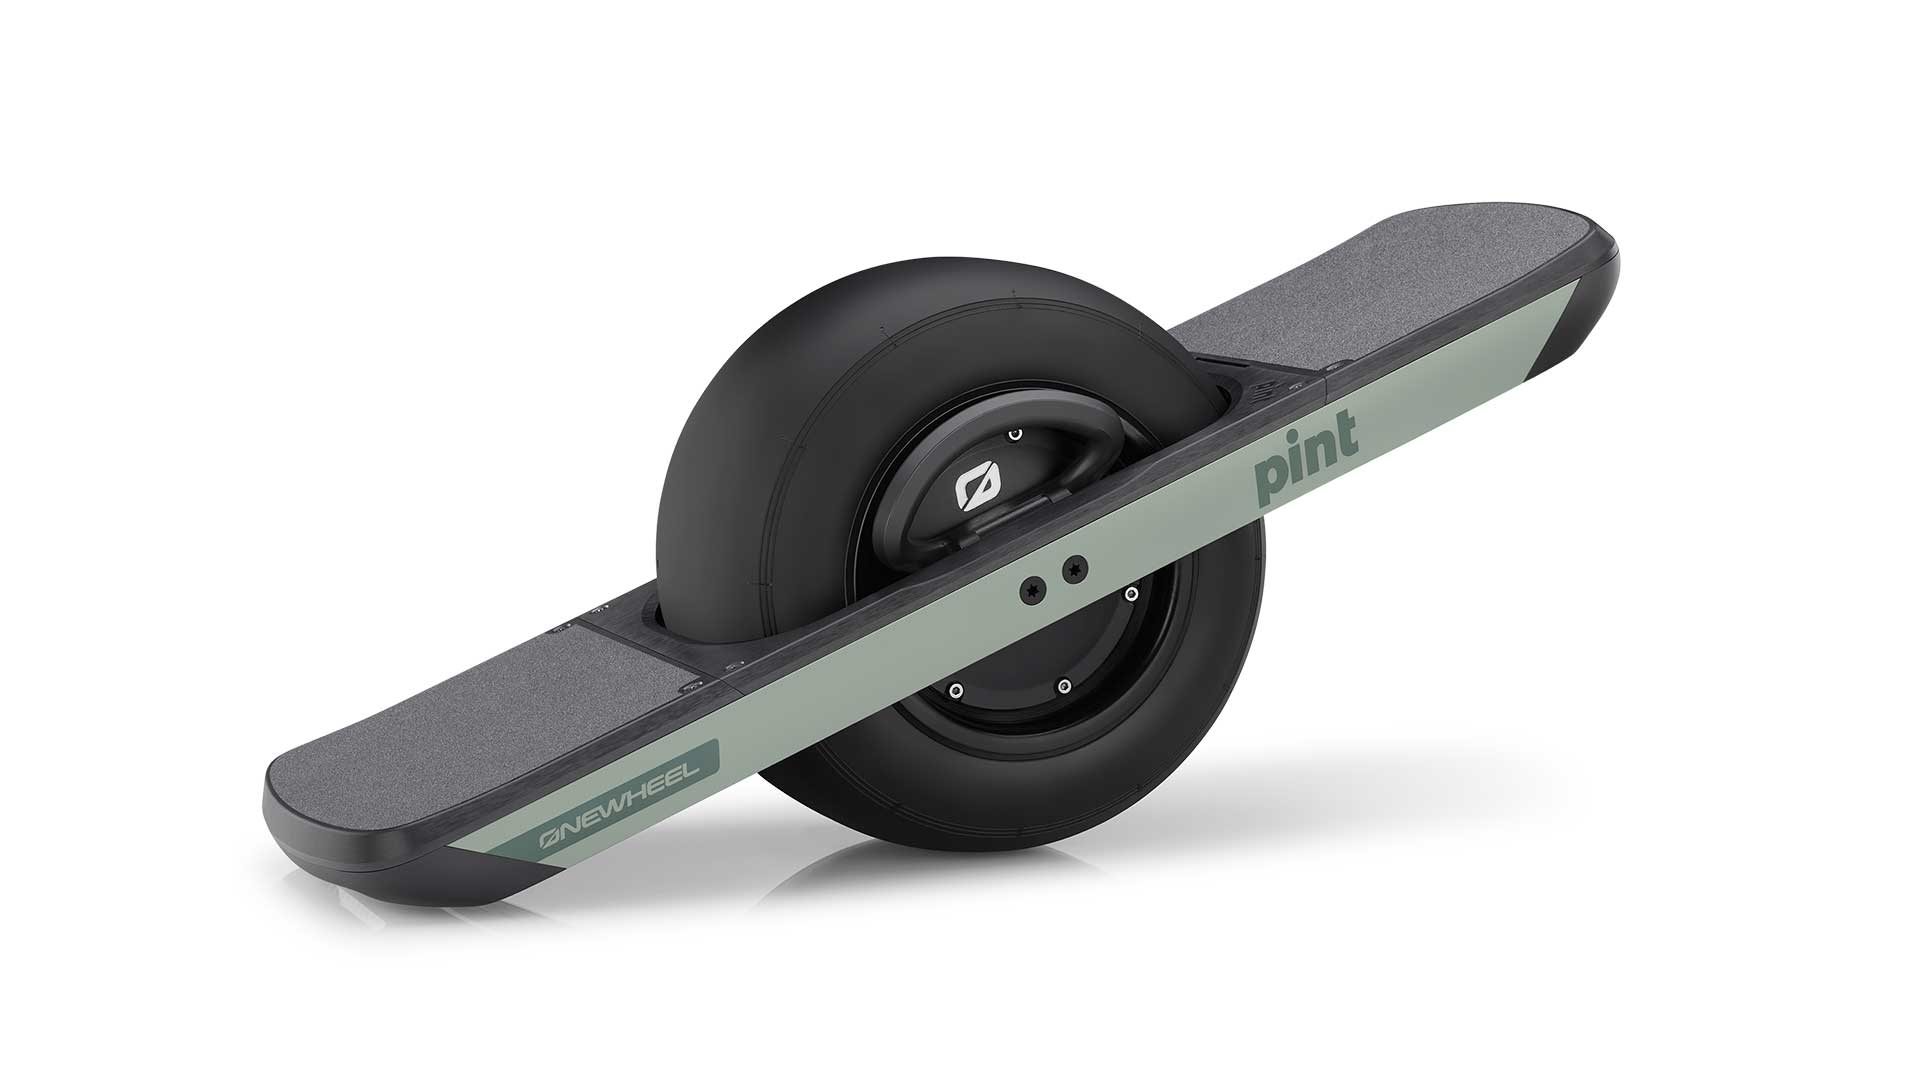 OneWheel Pint black friday 2021